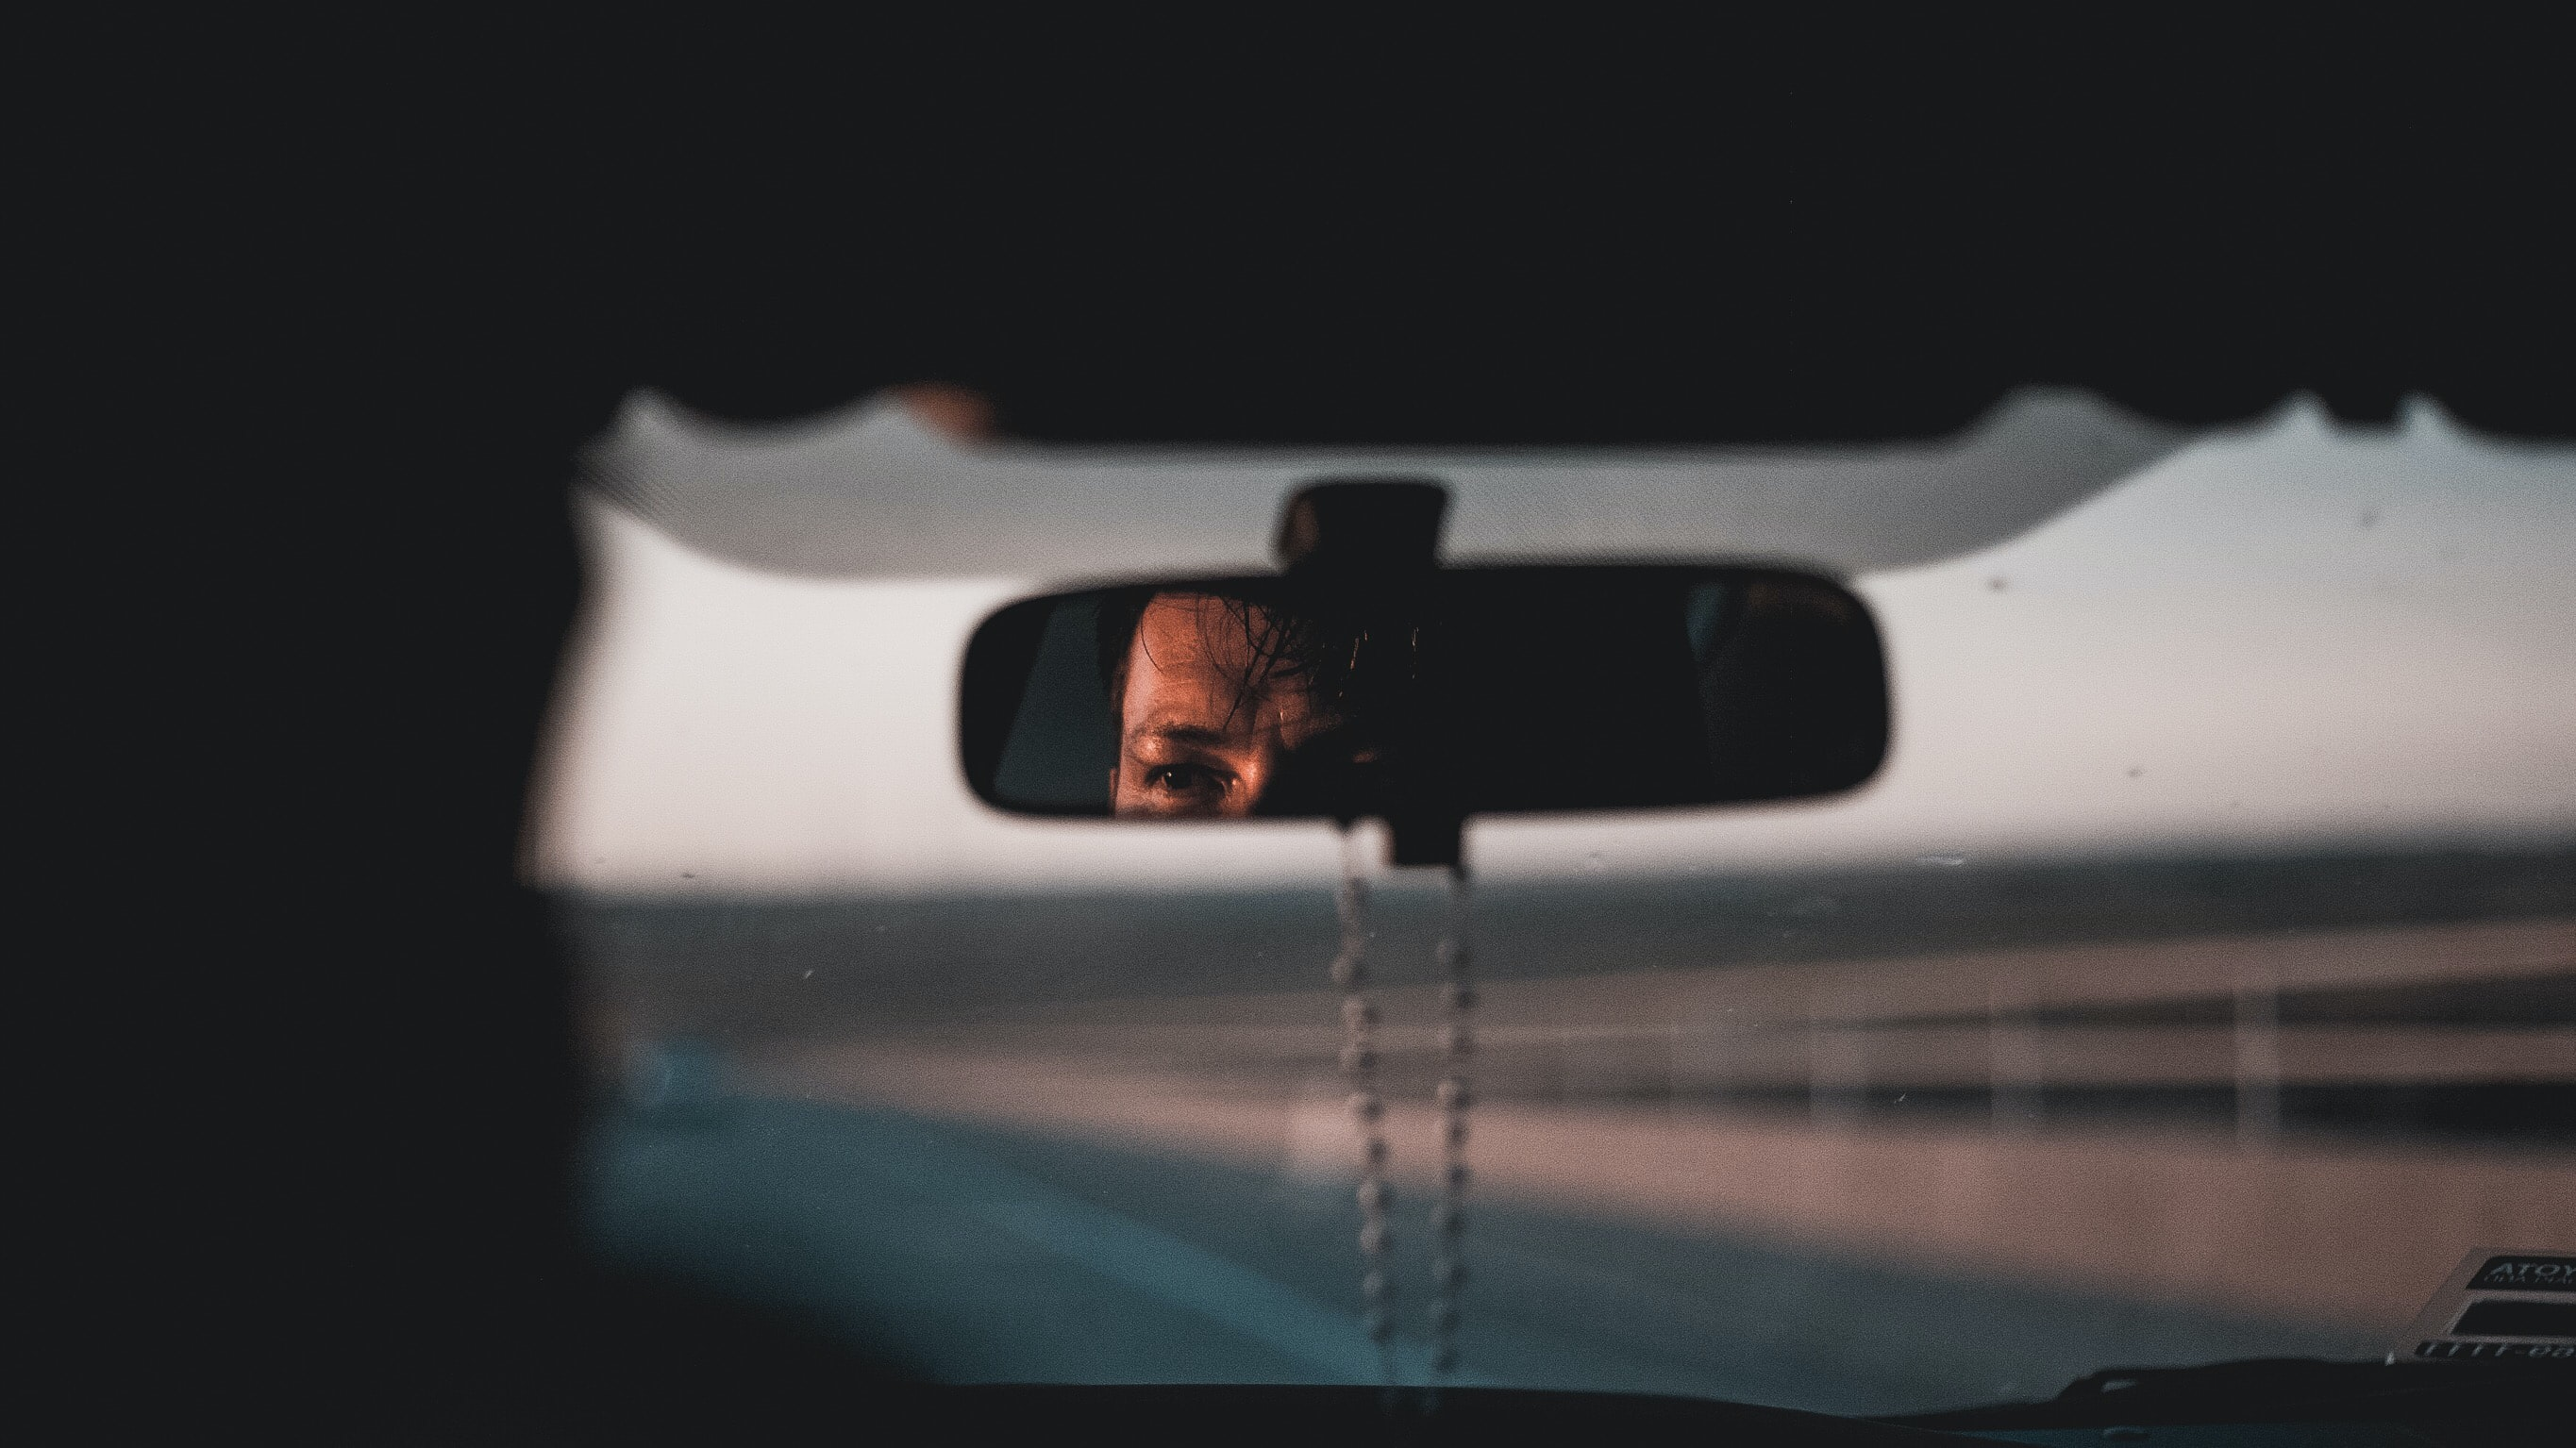 photo of black framed vehicle rear-view mirror